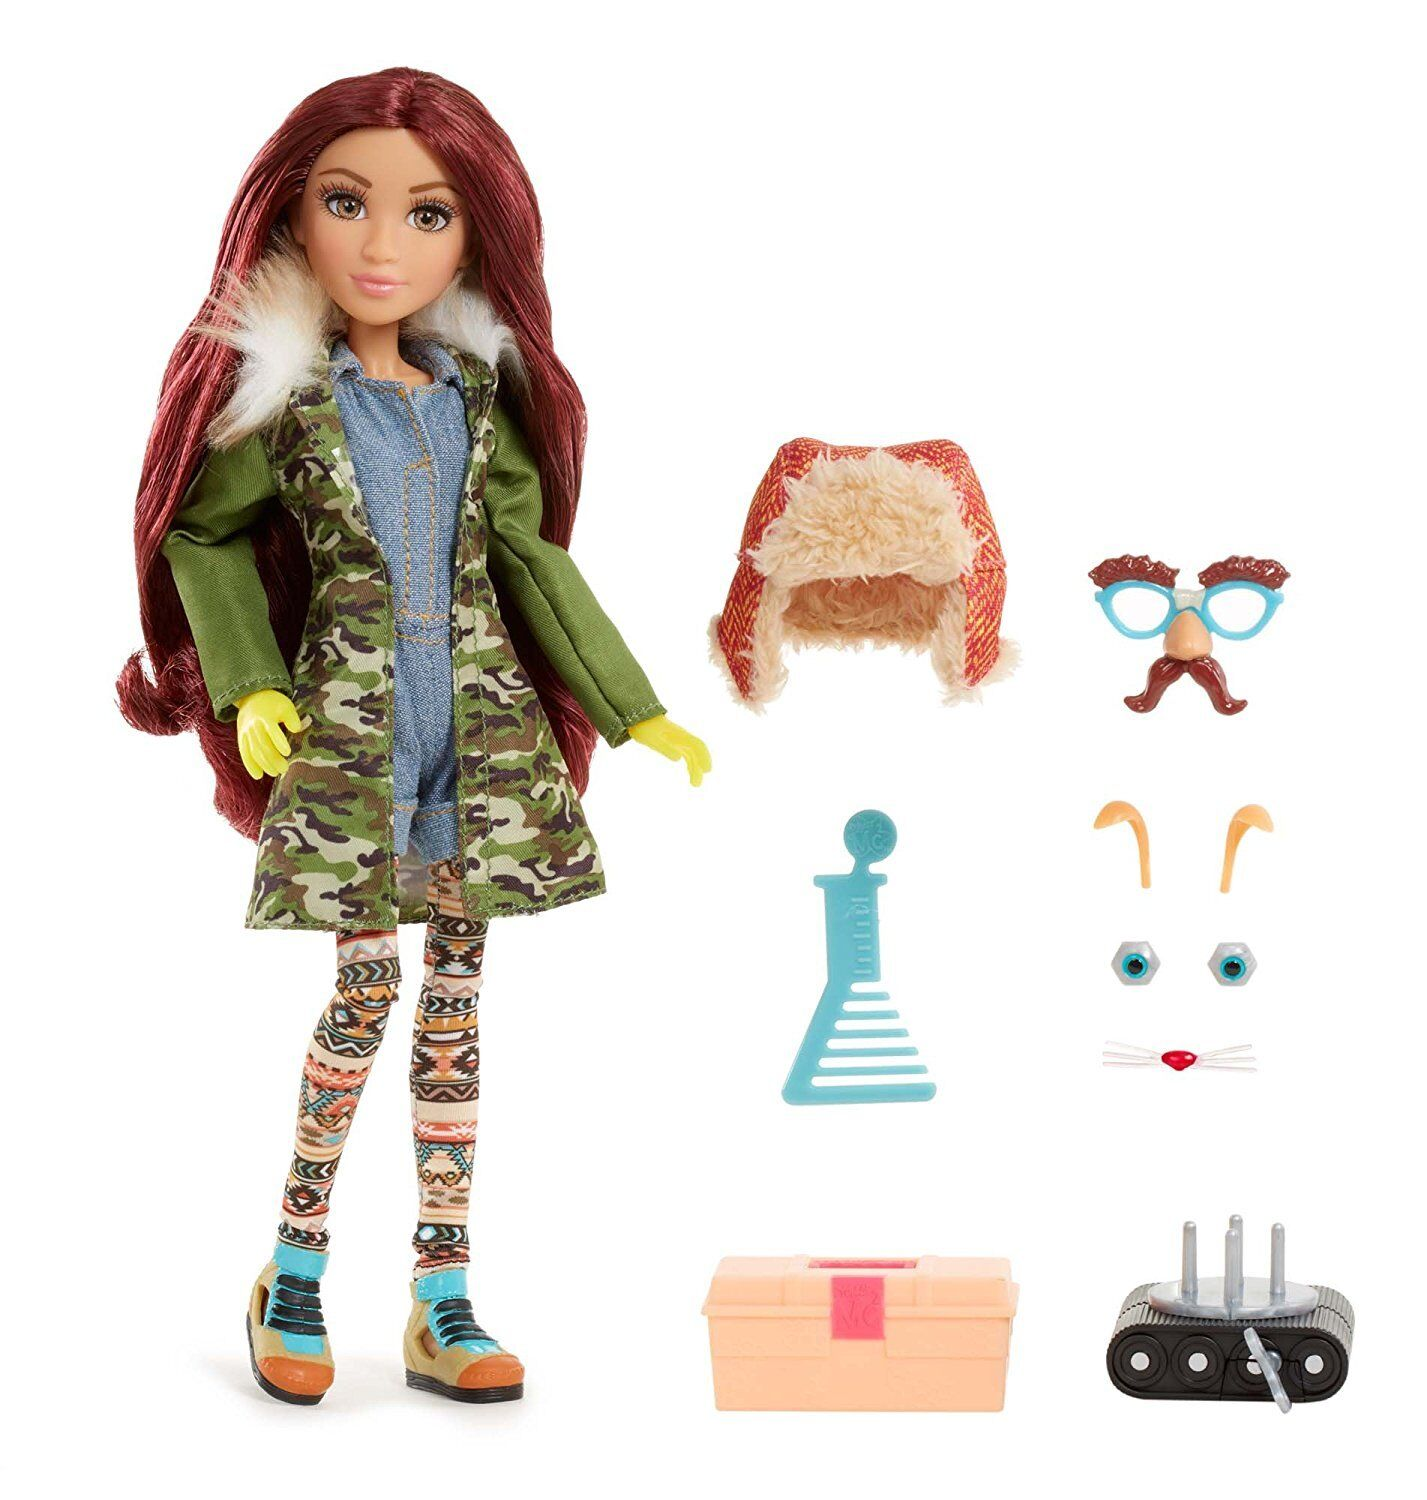 PROJECT MC2 CAMRYN'S ROBOT  WITH DOLL - BNIB